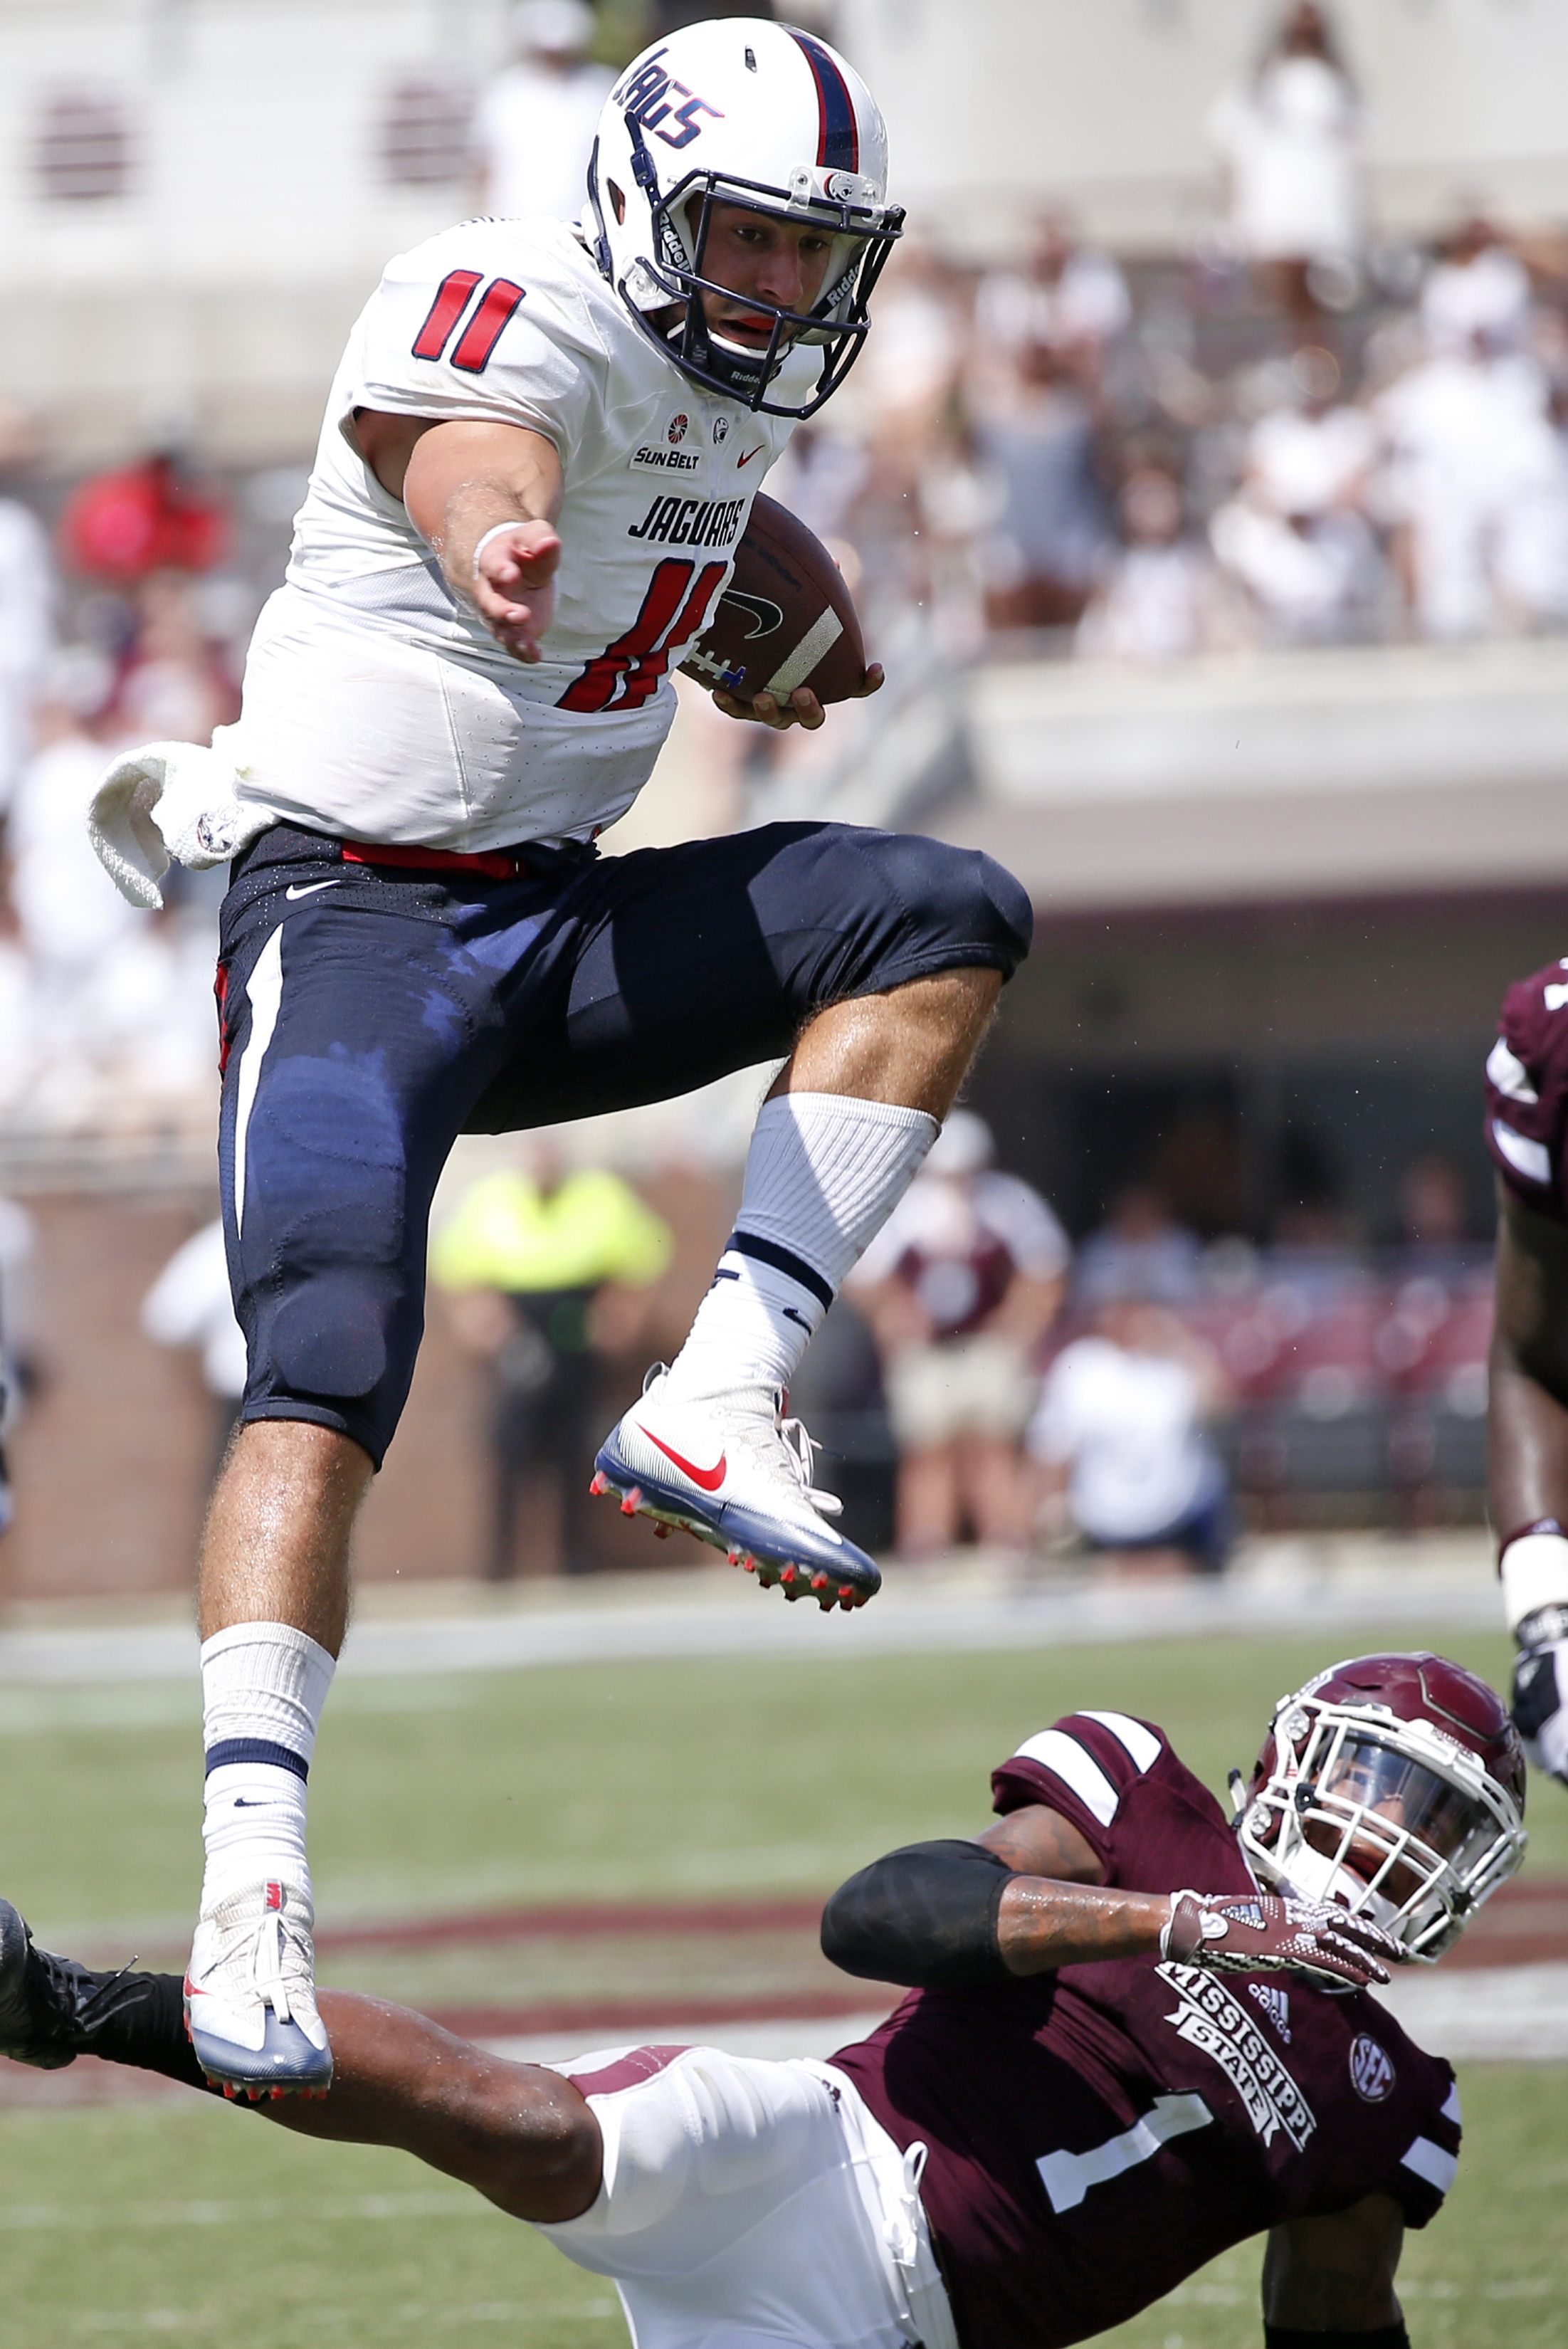 South Alabama quarterback Dallas Davis (11) leaps over Mississippi State defensive back Brandon Bryant (1) on a short run in the second half of an NCAA college football game in Starkville, Miss., Saturday, Sept. 3, 2016. South Alabama won 21-20. (AP Photo